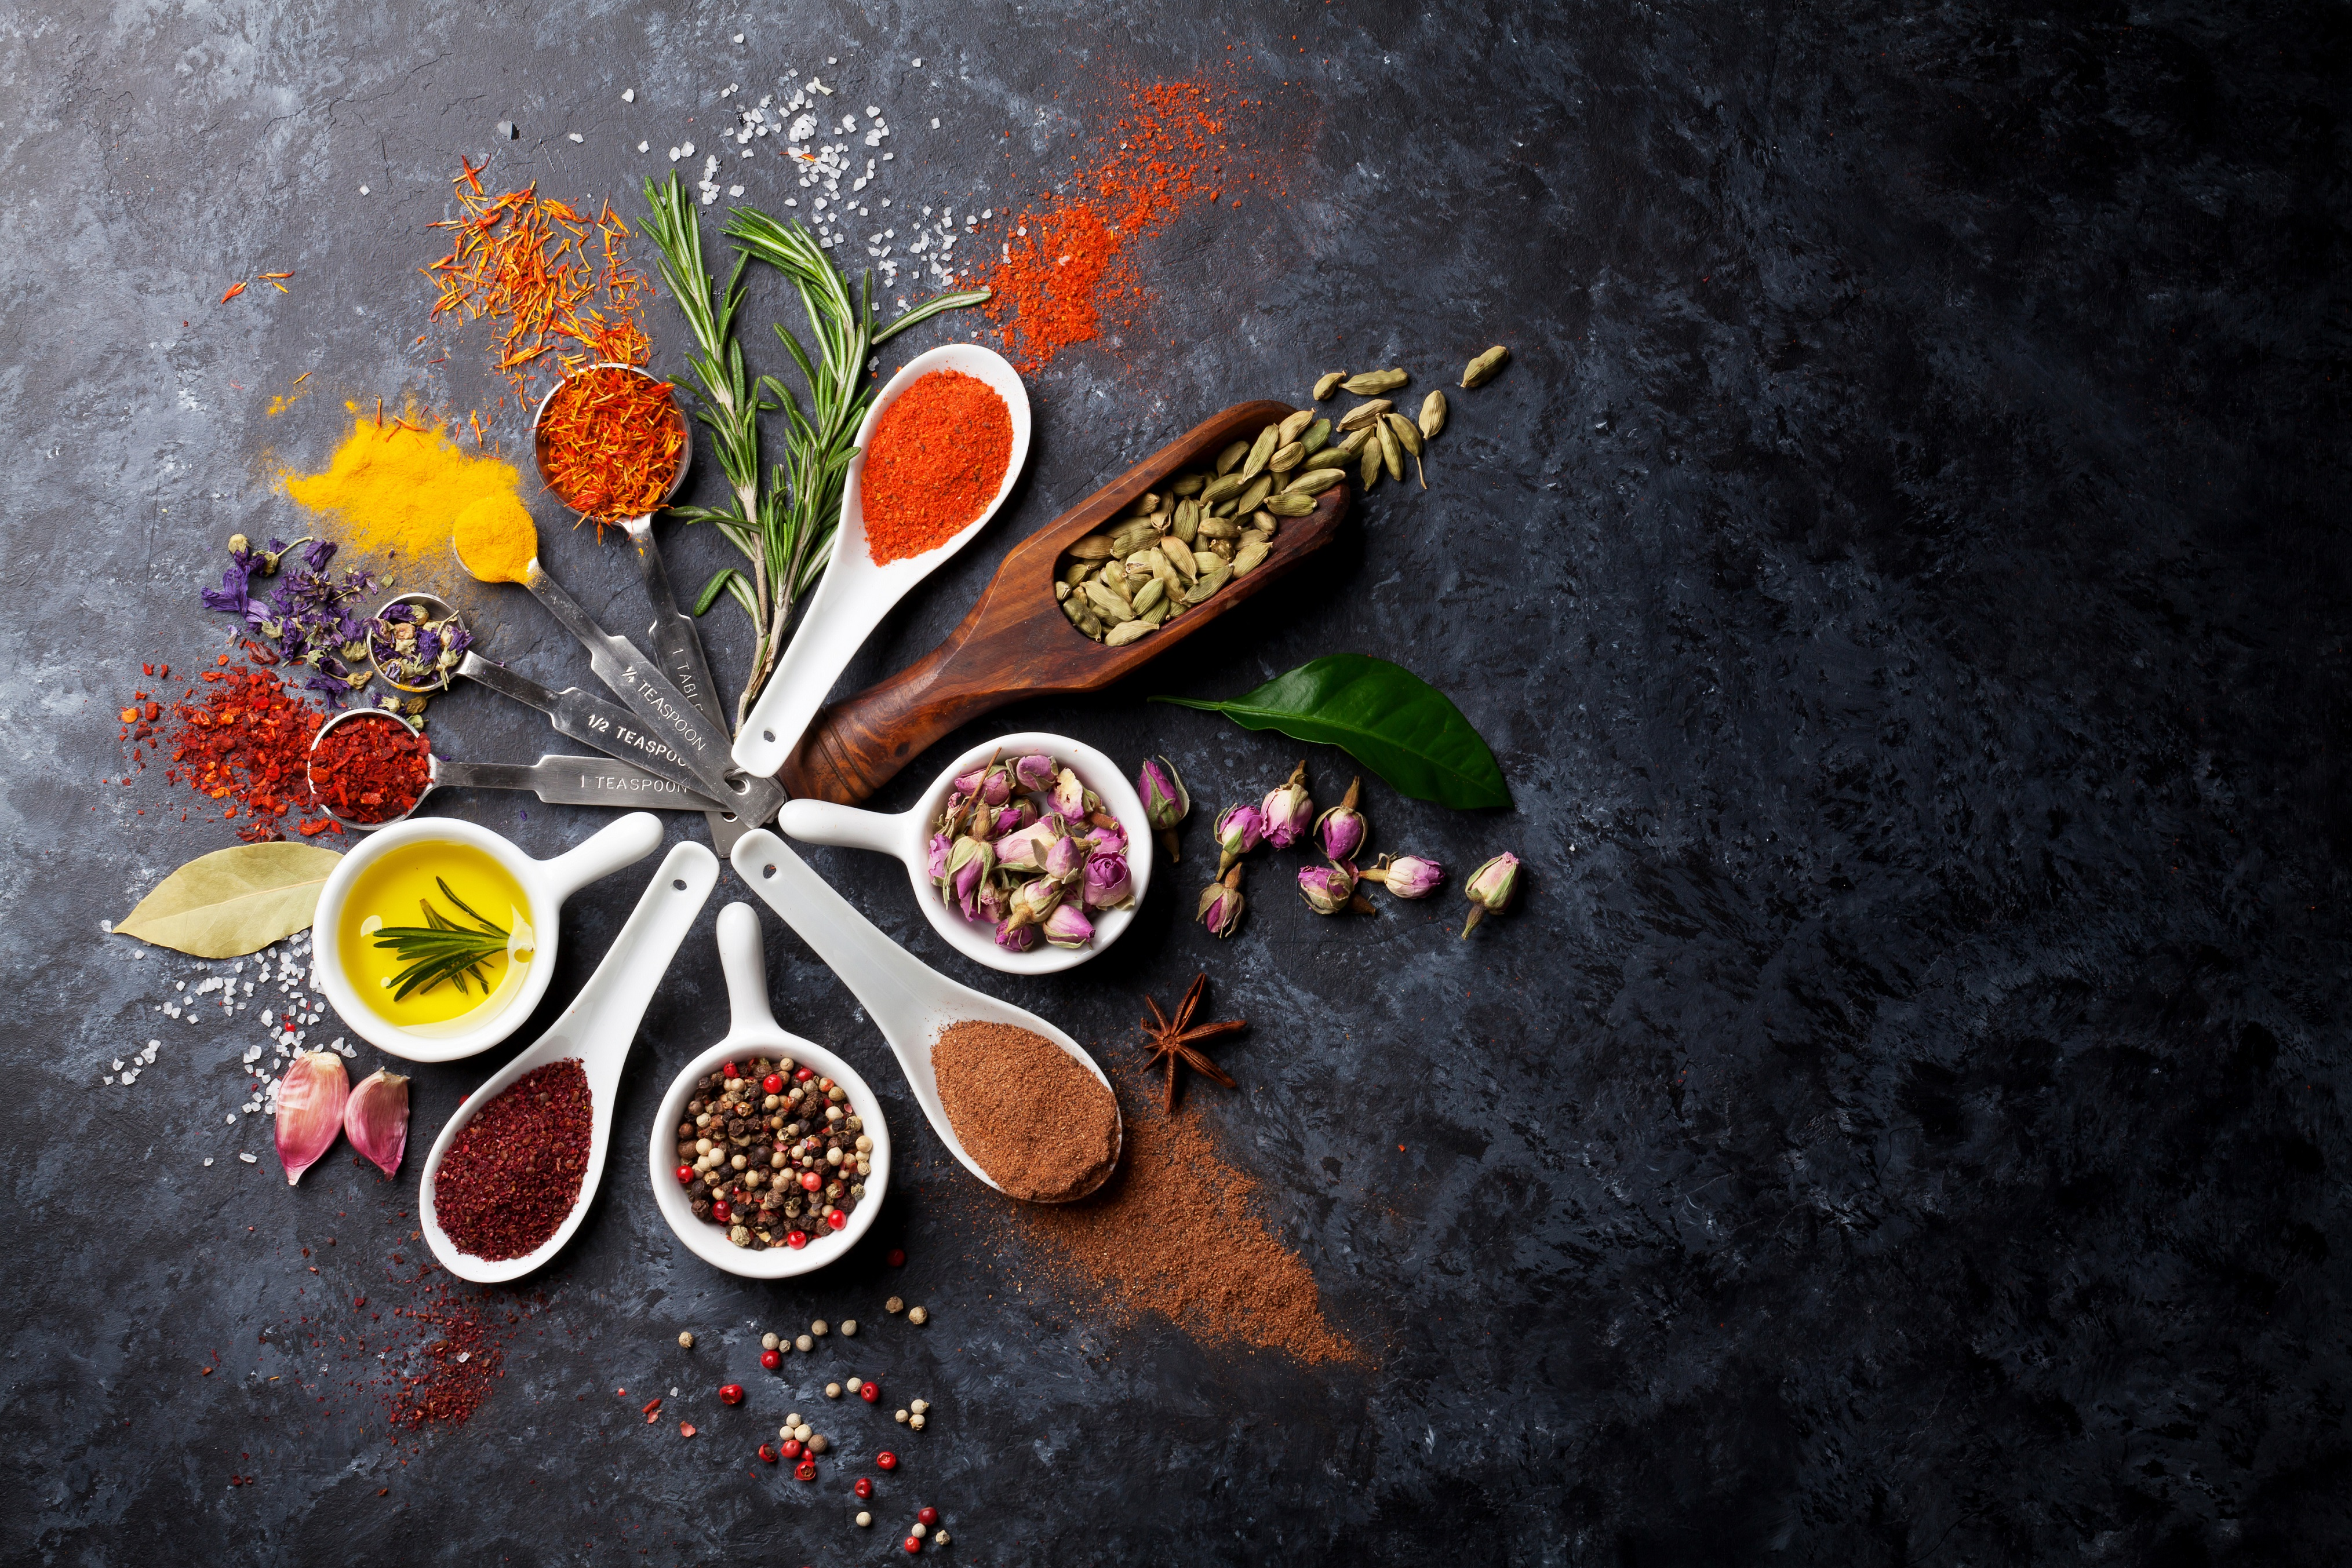 Cash Car Rentals >> 5 Spices You Should Add to Your Food This Fall